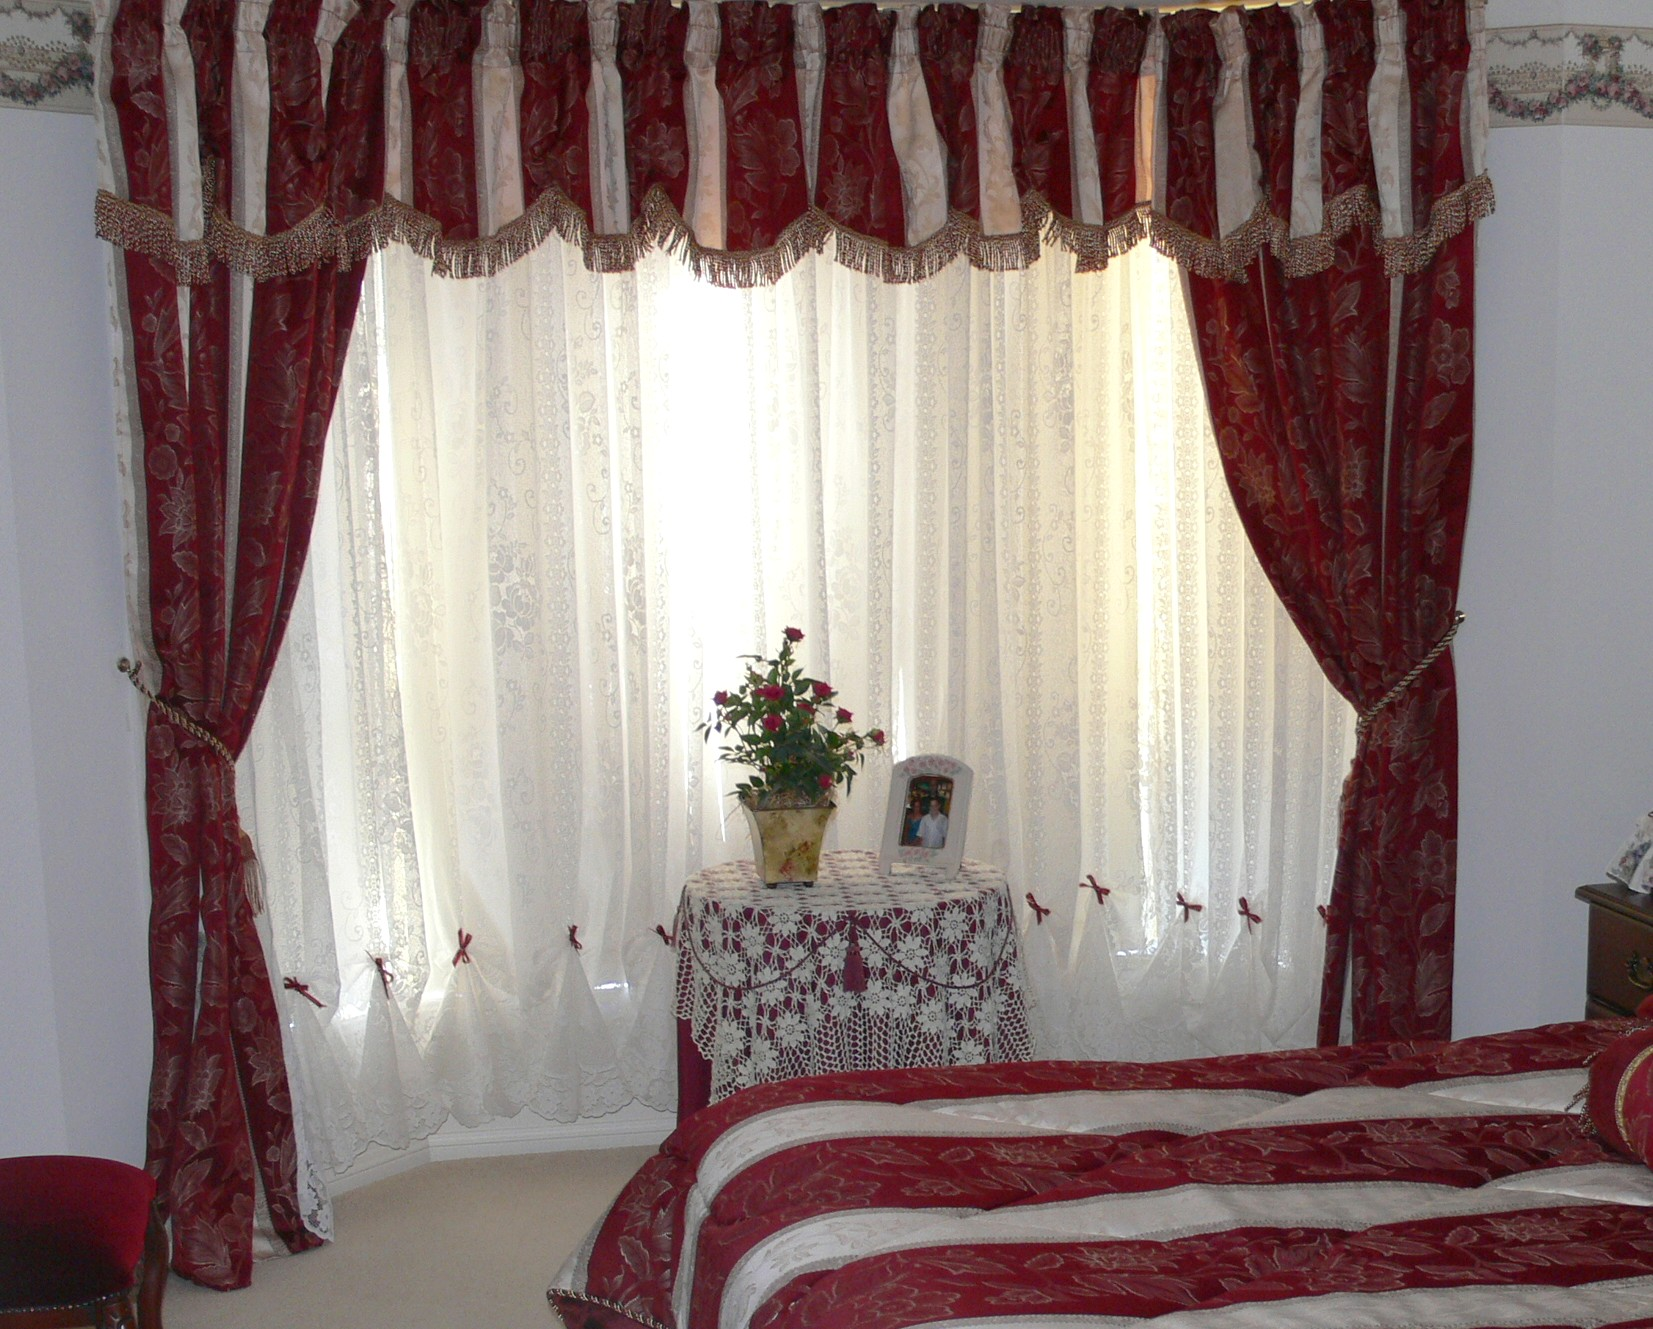 Curtains, Red, White, Scene, Bedroom, Window, Ten Random Facts, House,